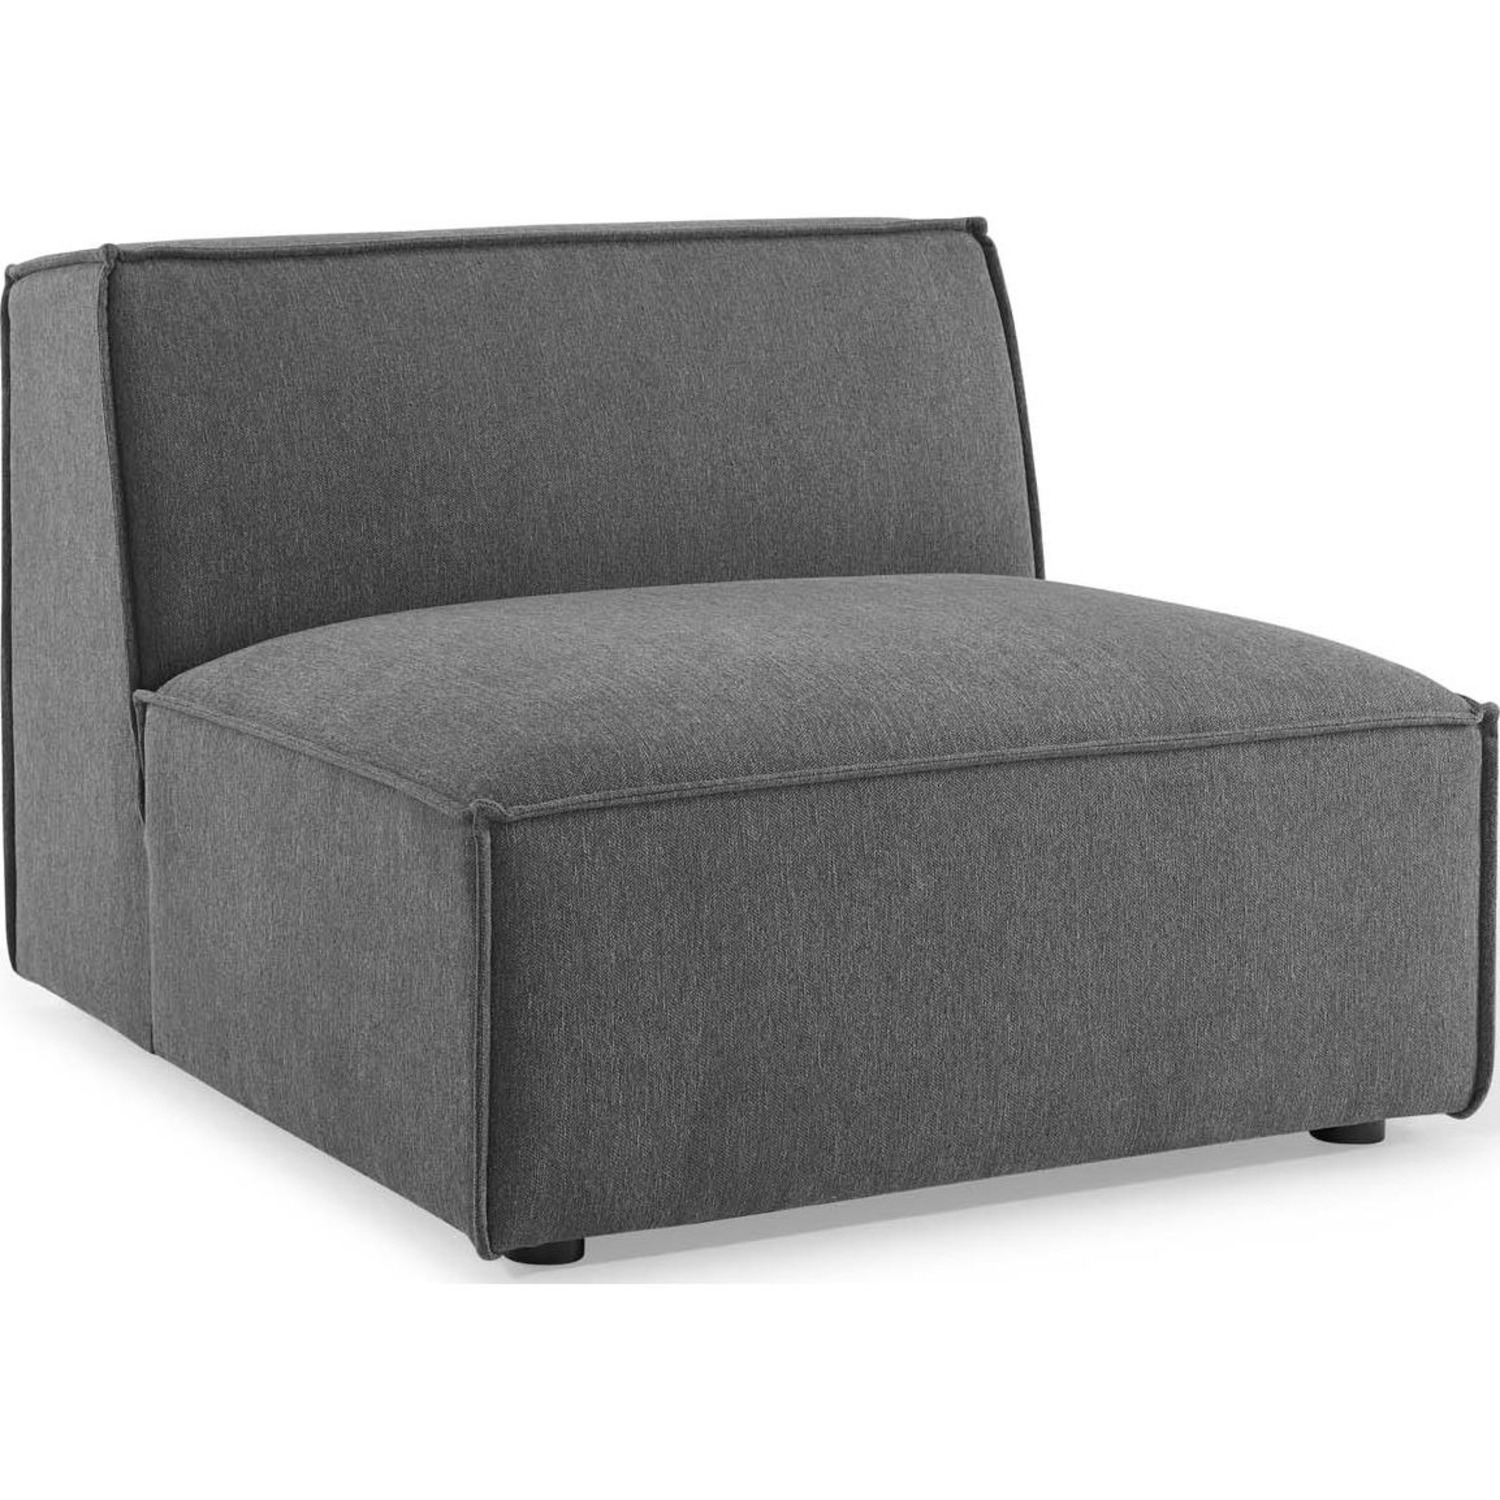 4-Piece Sectional Sofa In Charcoal Fabric - image-6